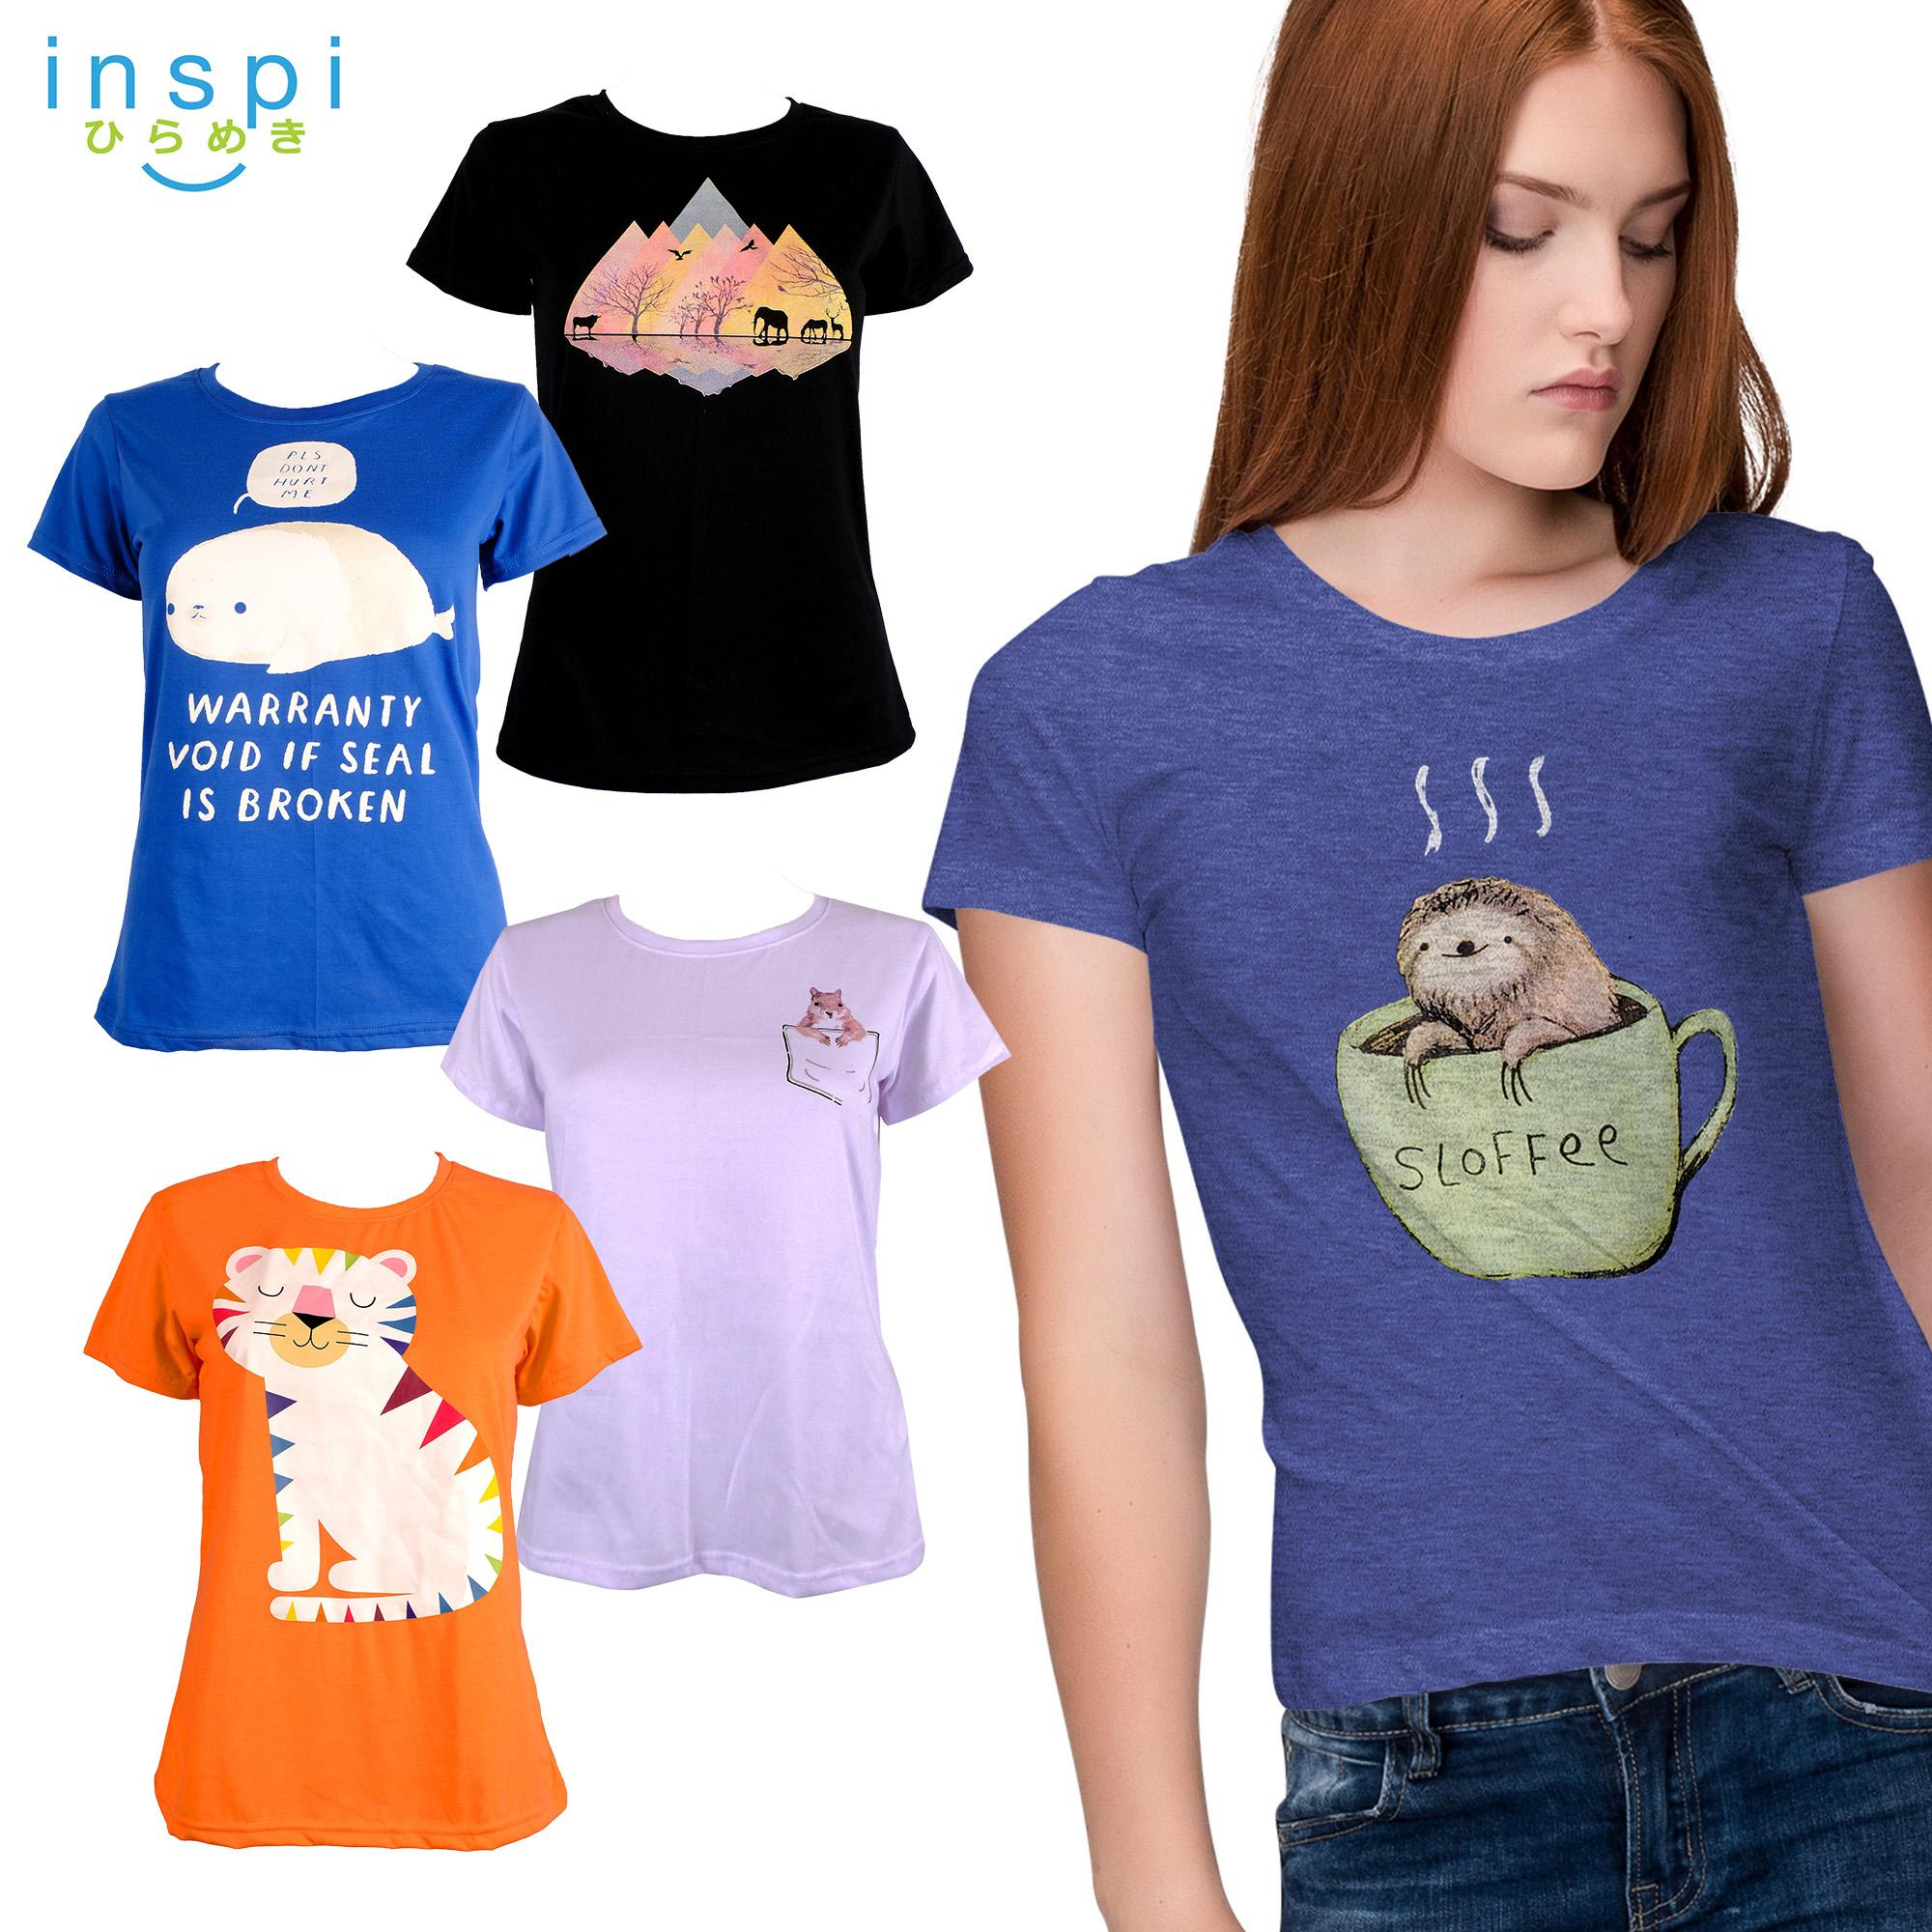 7a76c485647 INSPI Tees Ladies Pet Collection tshirt printed graphic tee Ladies t shirt  shirts women tshirts for